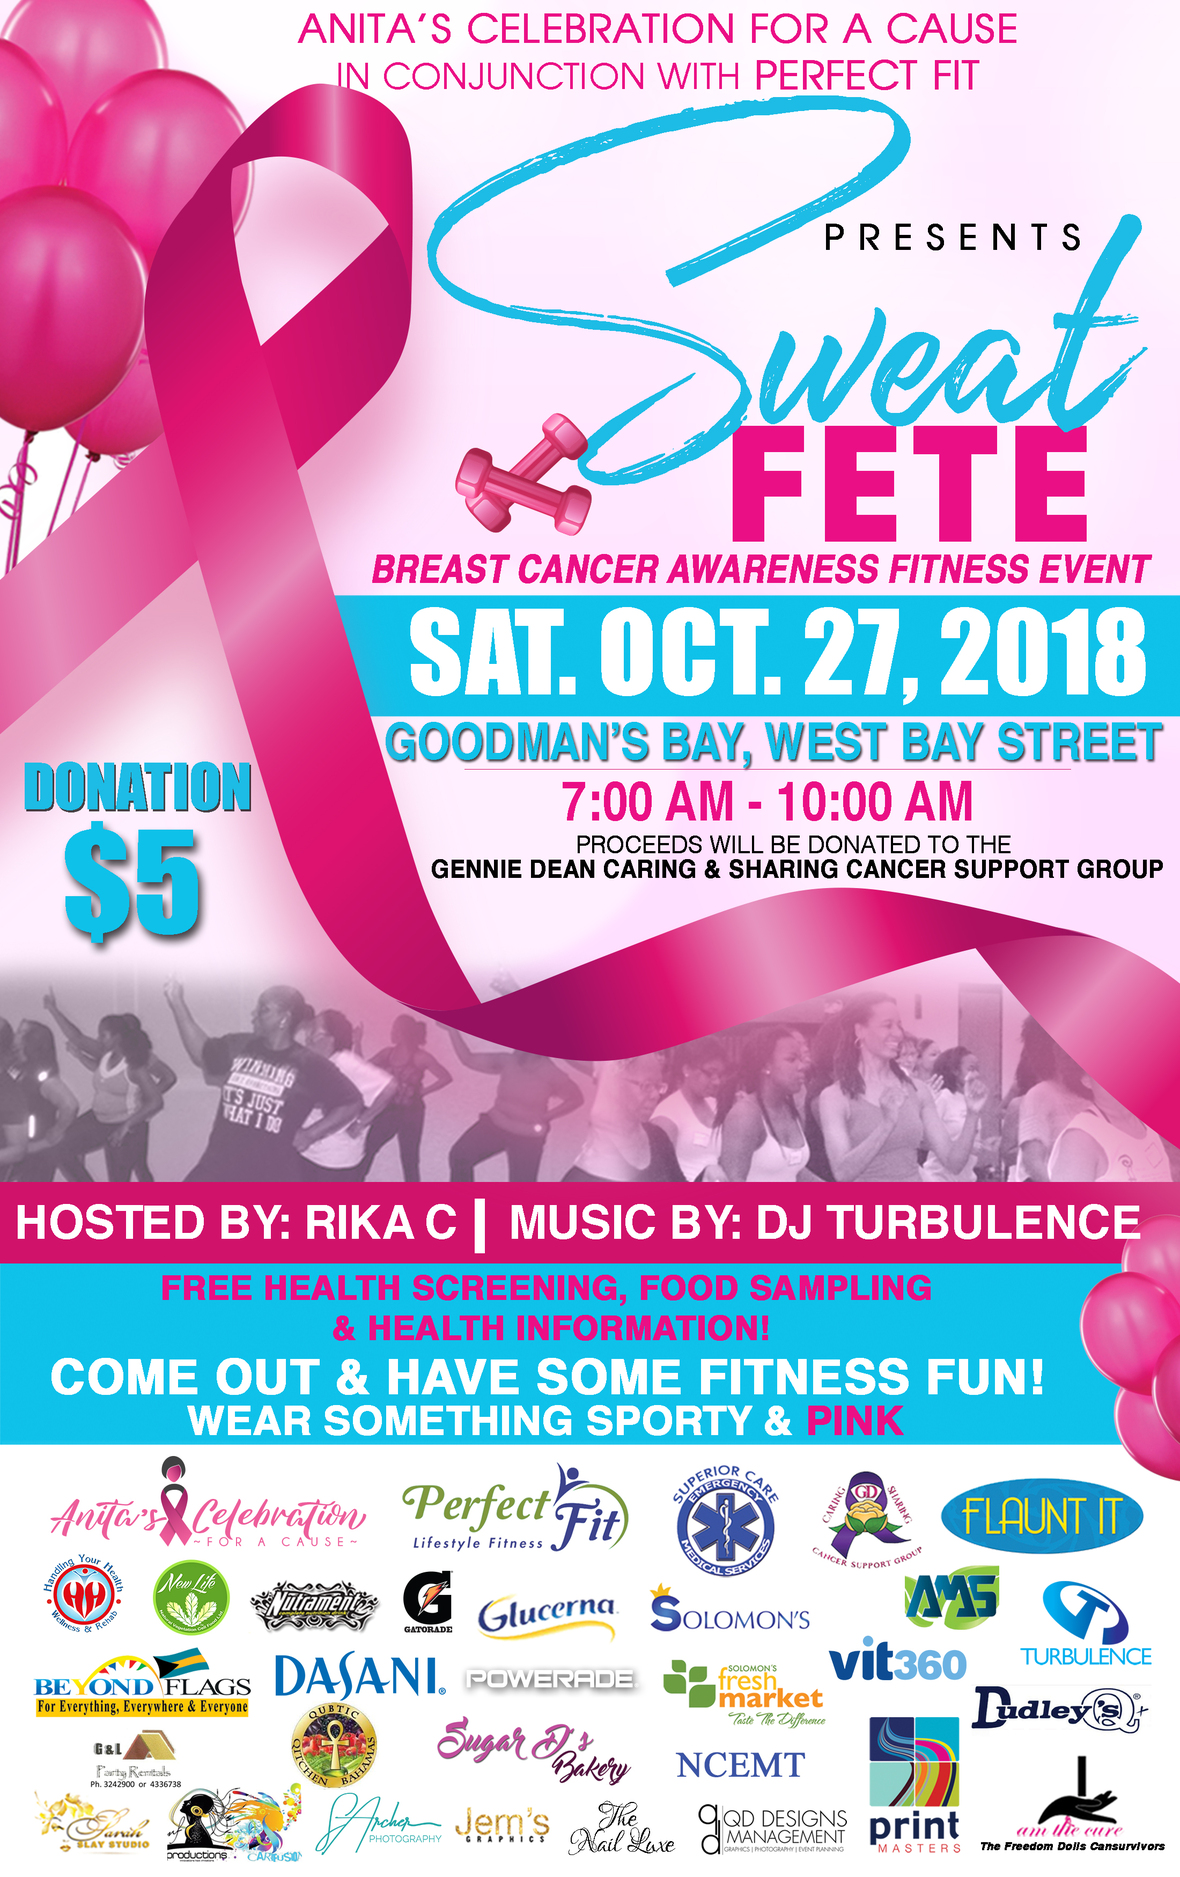 Sweat Fete   Breast Cancer Awareness Fitness Event